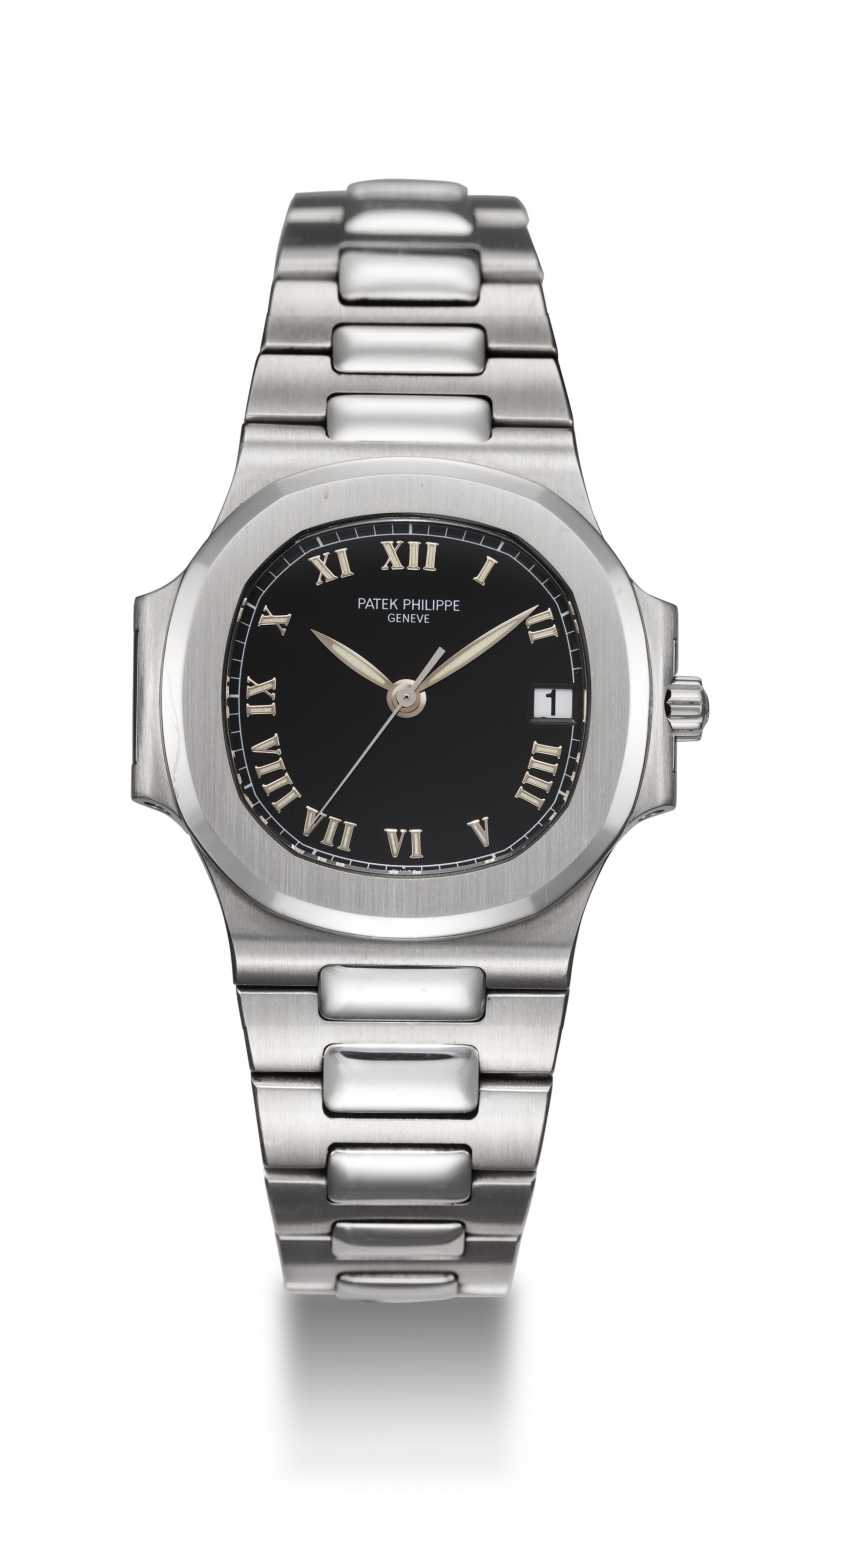 PATEK PHILIPPE, REF. 3800/1A-001, A STEEL NAUTILUS WITH BLACK DIAL AND ROMAN NUMERALS - photo 3